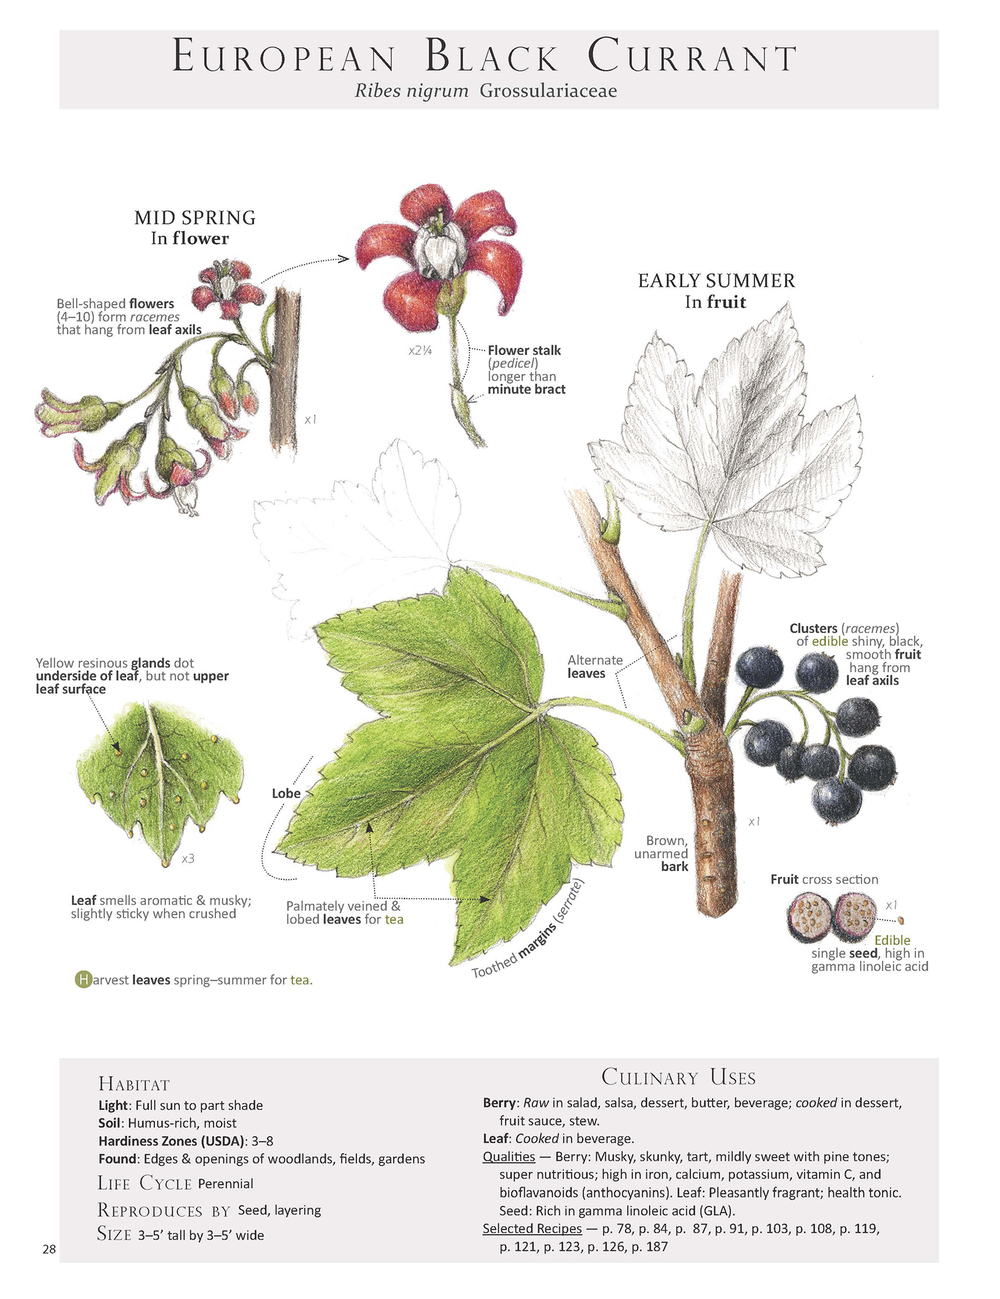 European Black Currant - Ribes nigrum